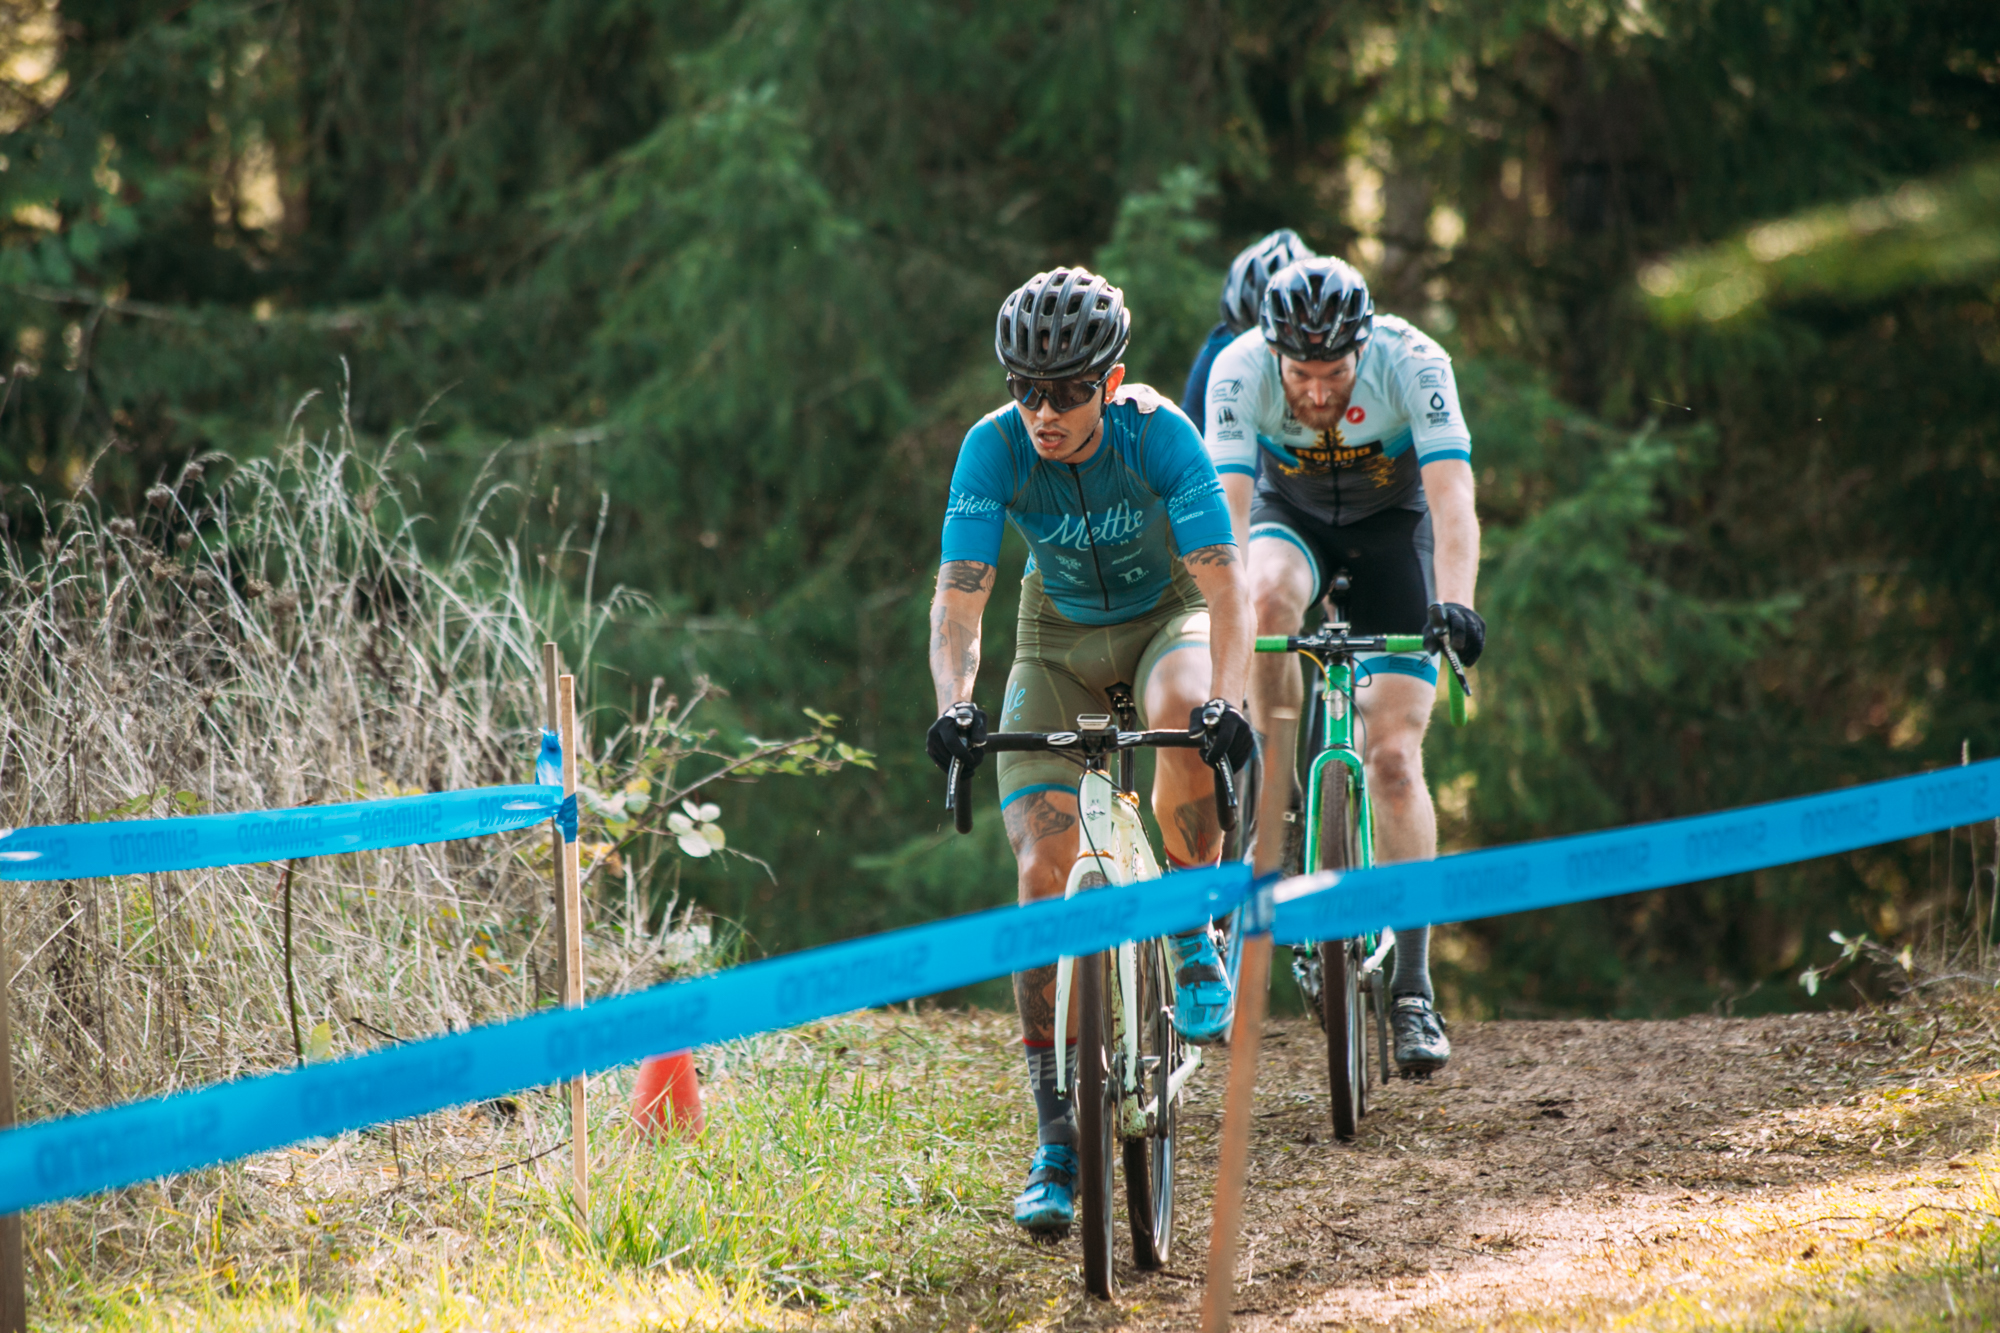 Cyclocross18_CCCX_RainierHS-123-mettlecycling.jpg